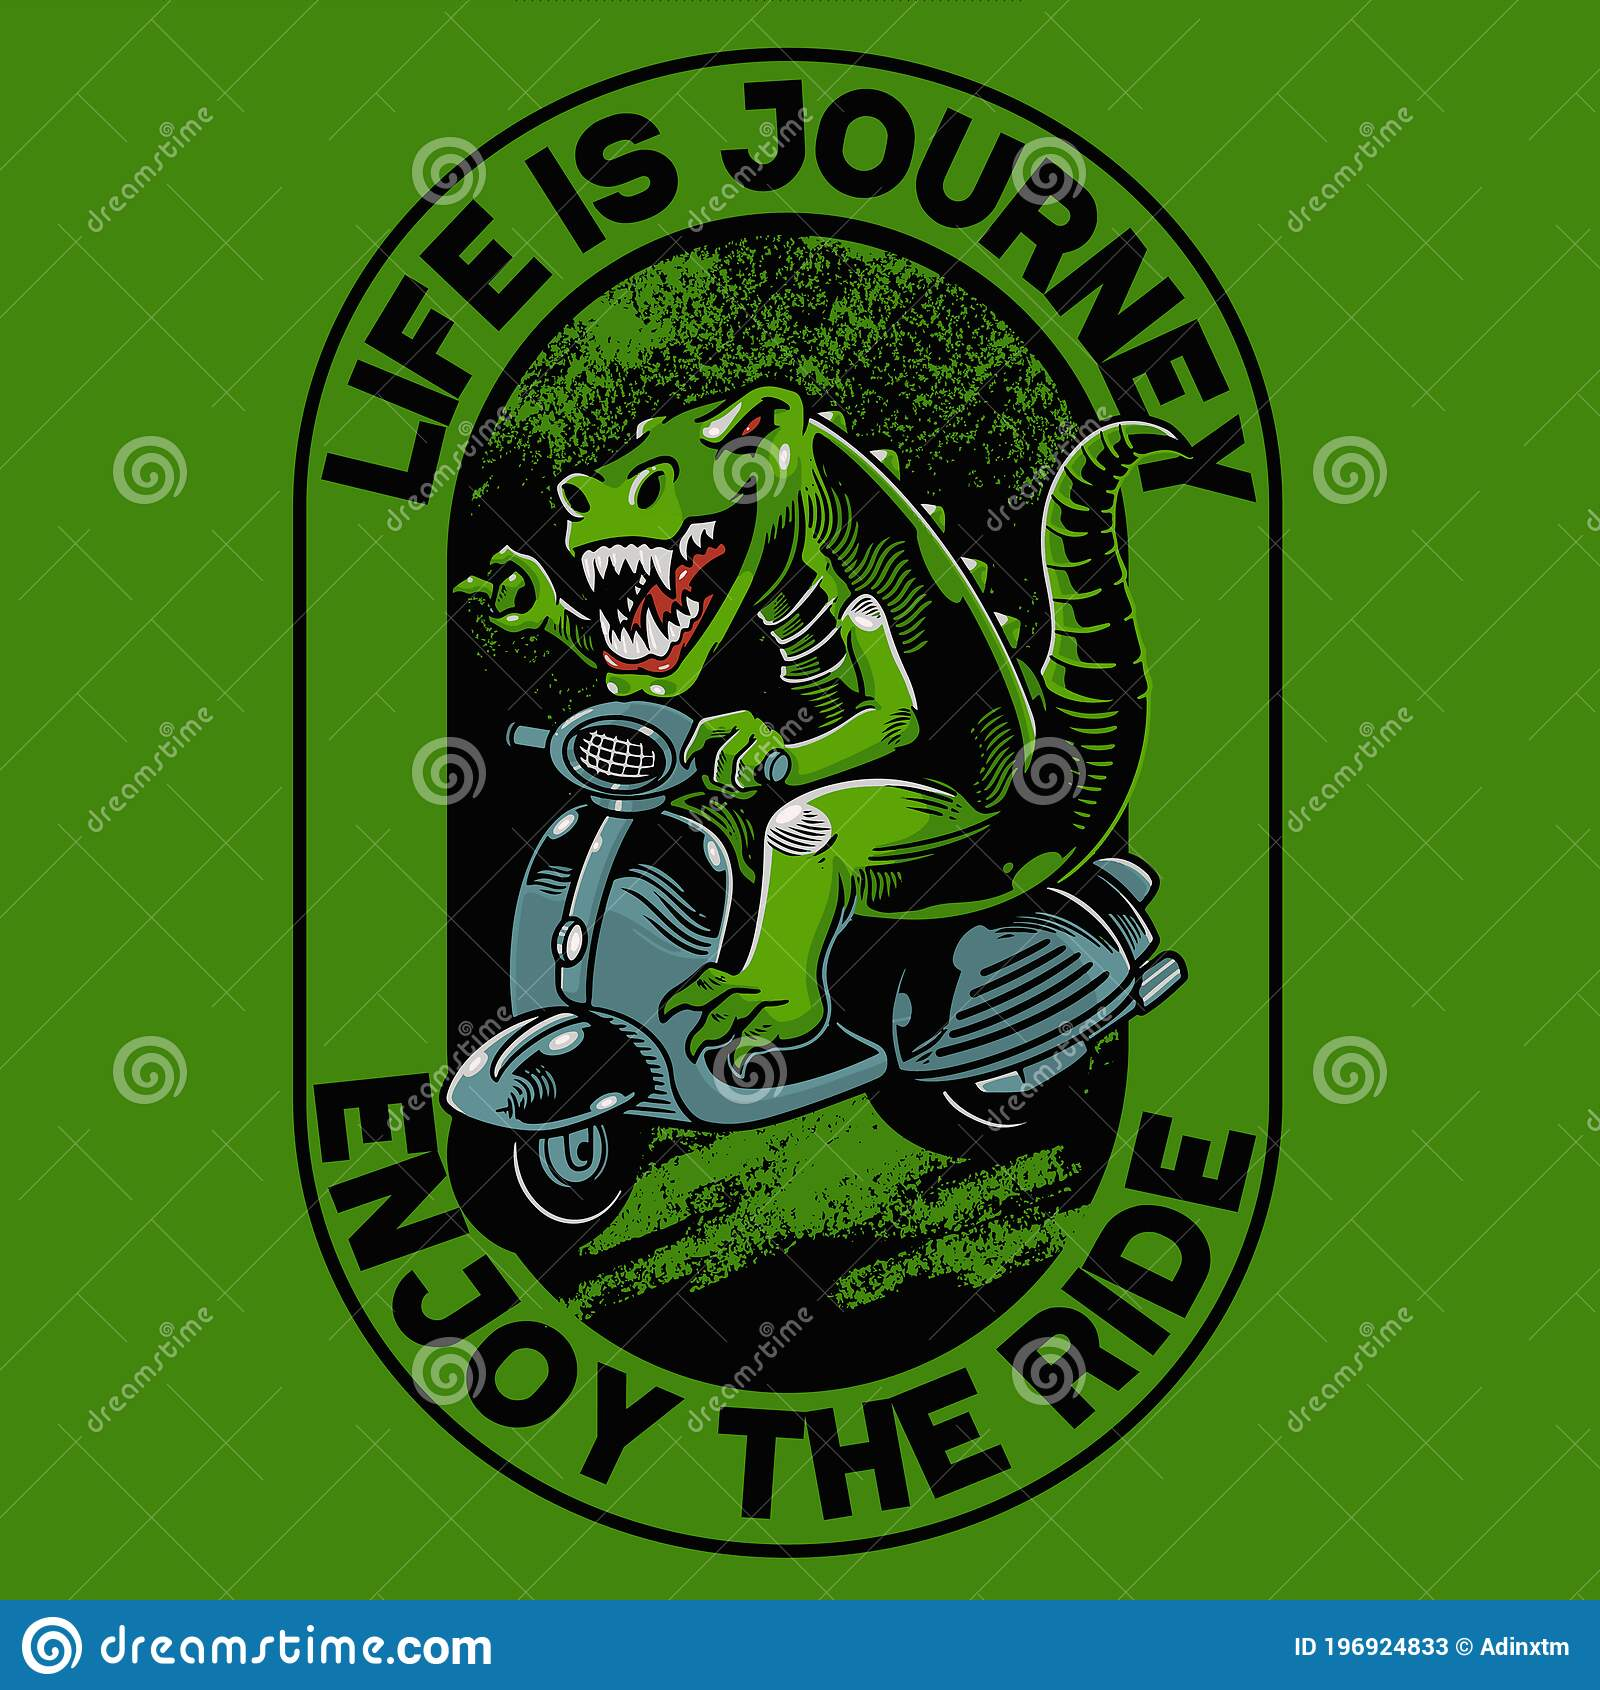 Tyrannosaurus Rex With Vespa Scooter Matic T Shirt And Apparel Trendy Design Good For T Shirt Graphics Poster Print And Other Stock Vector Illustration Of Background Predator 196924833